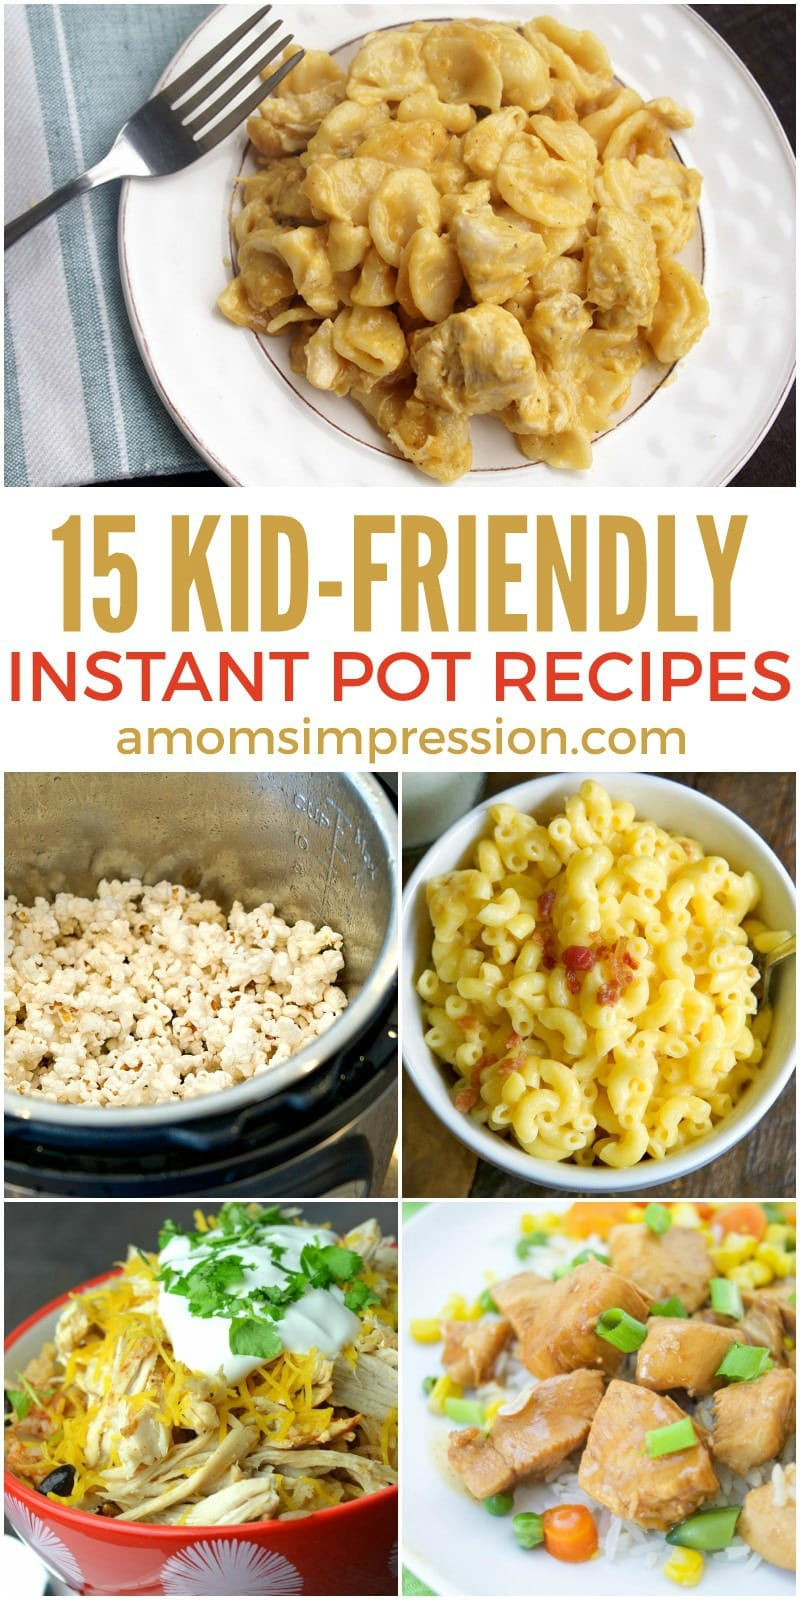 Looking for some Instant Pot recipes for the family? These popular Instant Pot recipes are kid friendly meals and since they cook up so quick, they're low maintenance!